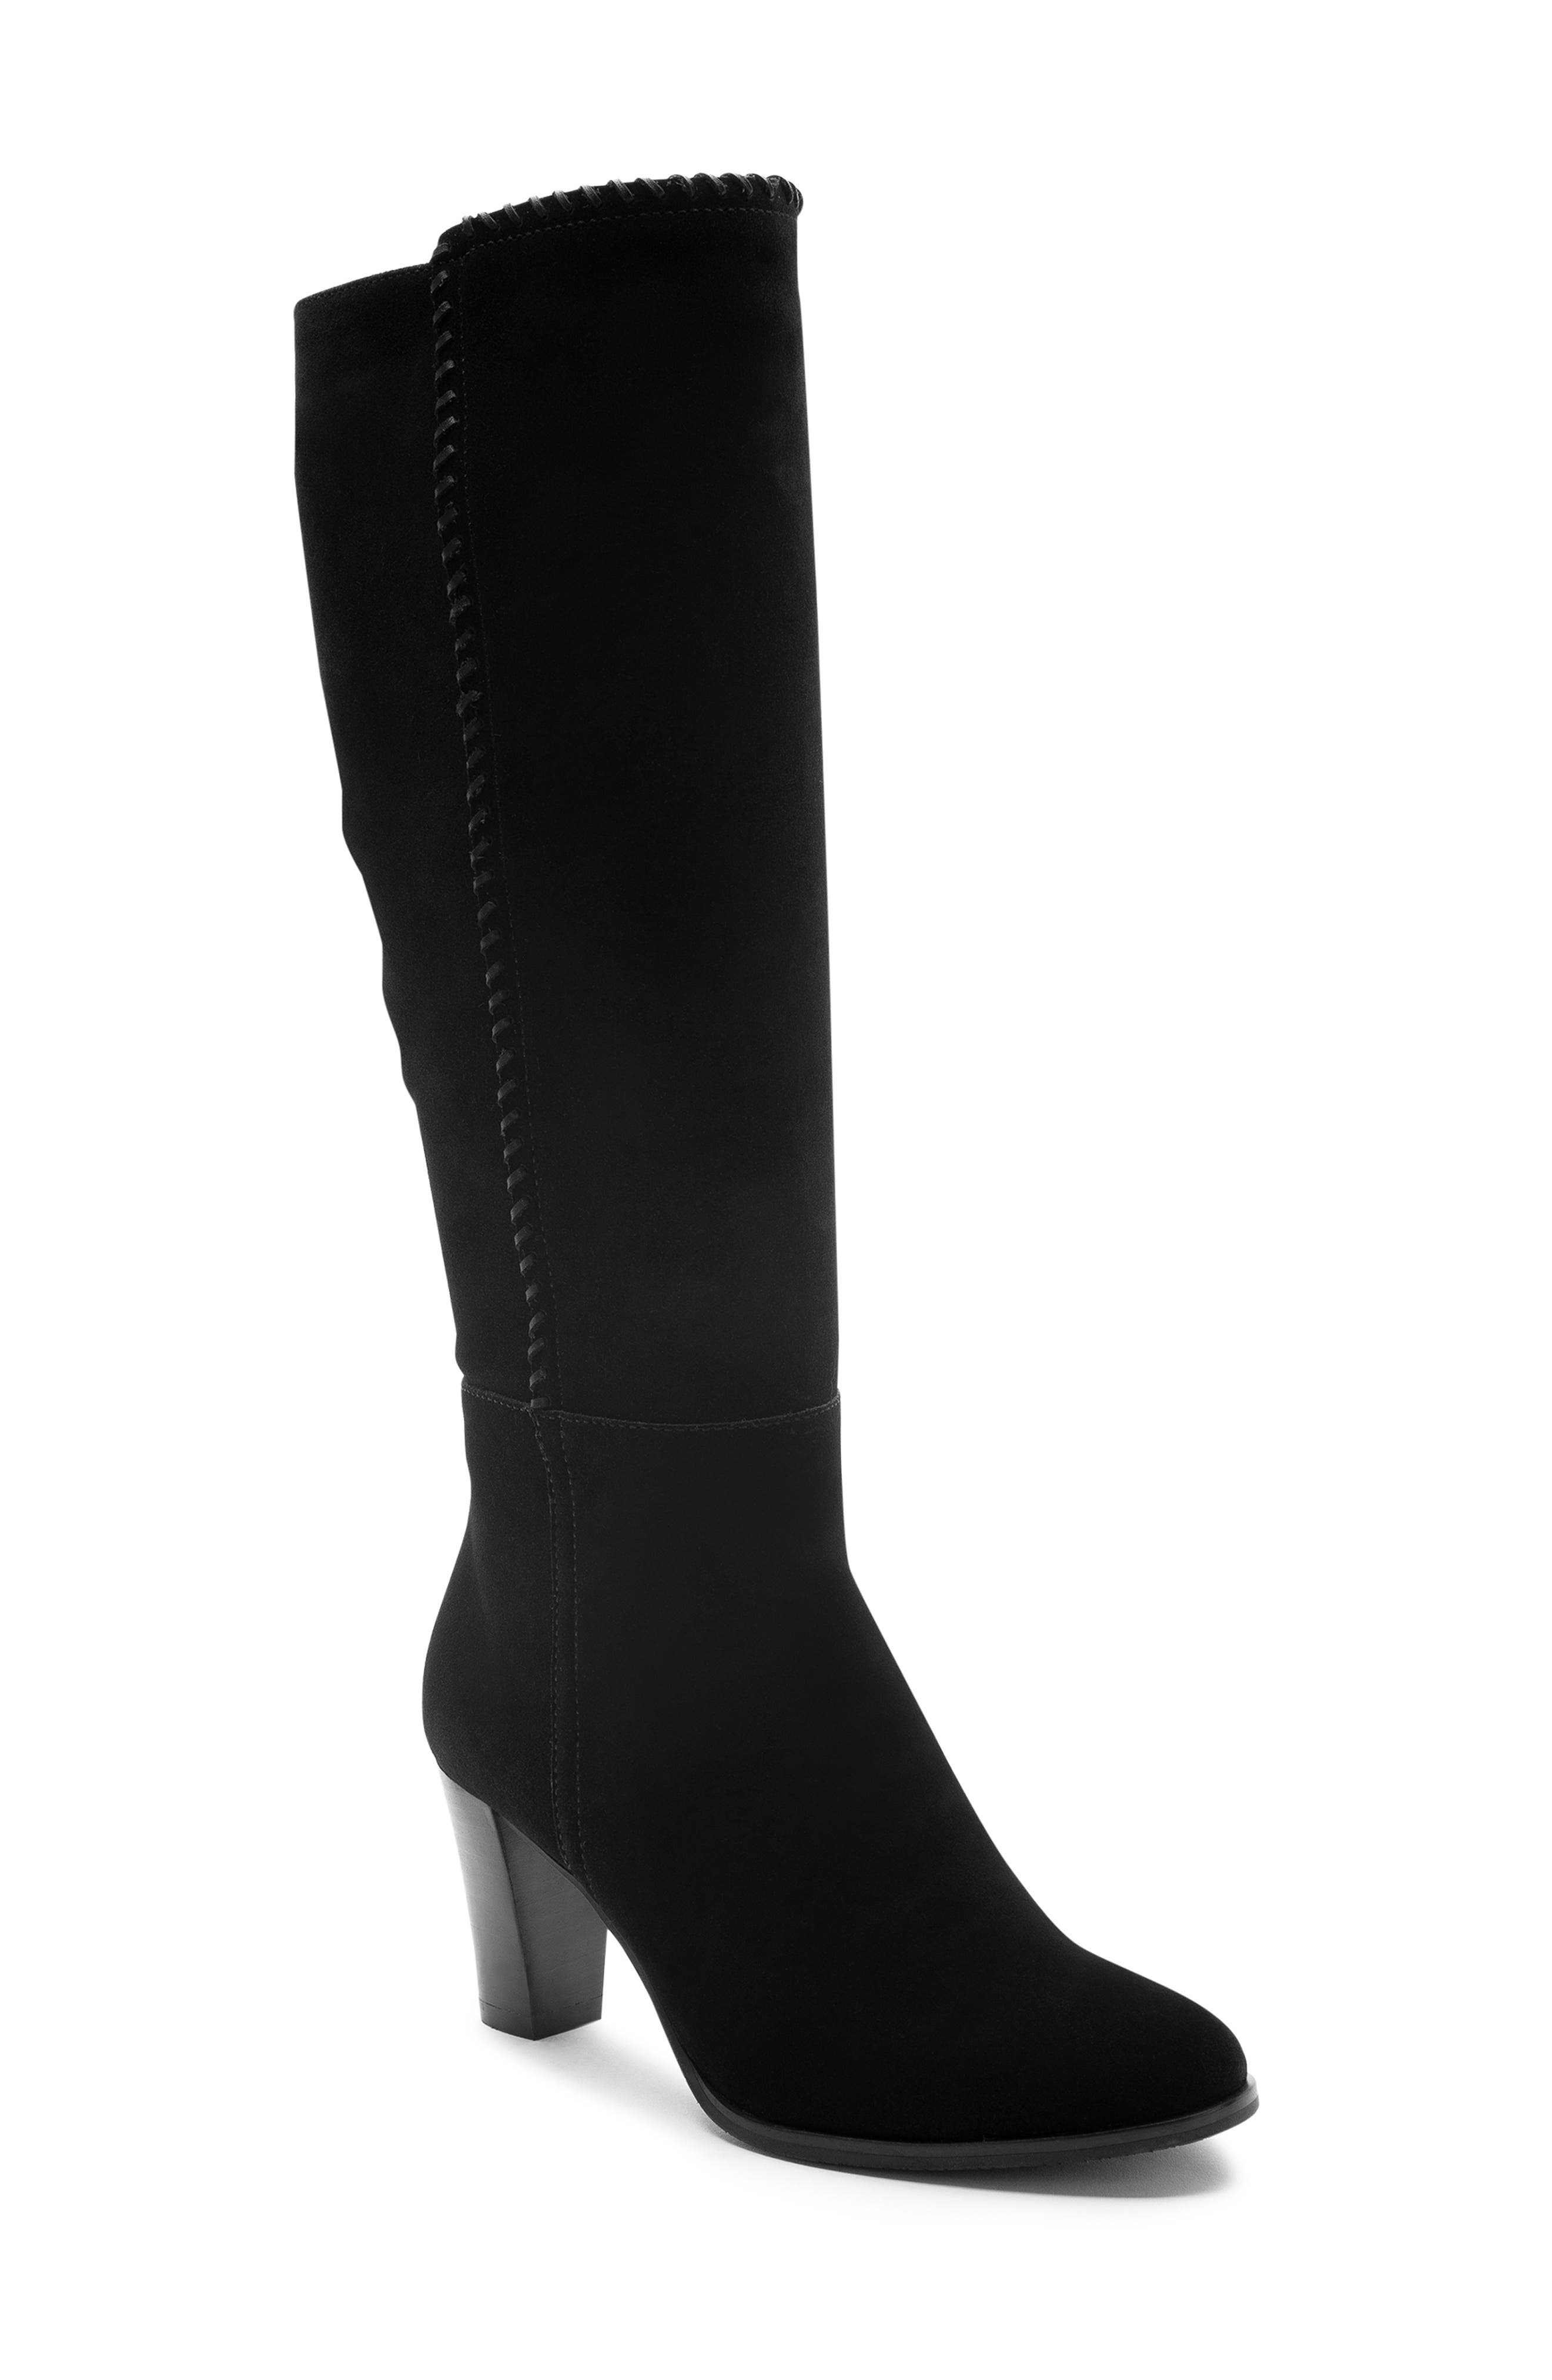 BLONDO, Edith Knee-High Waterproof Suede Boot, Main thumbnail 1, color, BLACK SUEDE